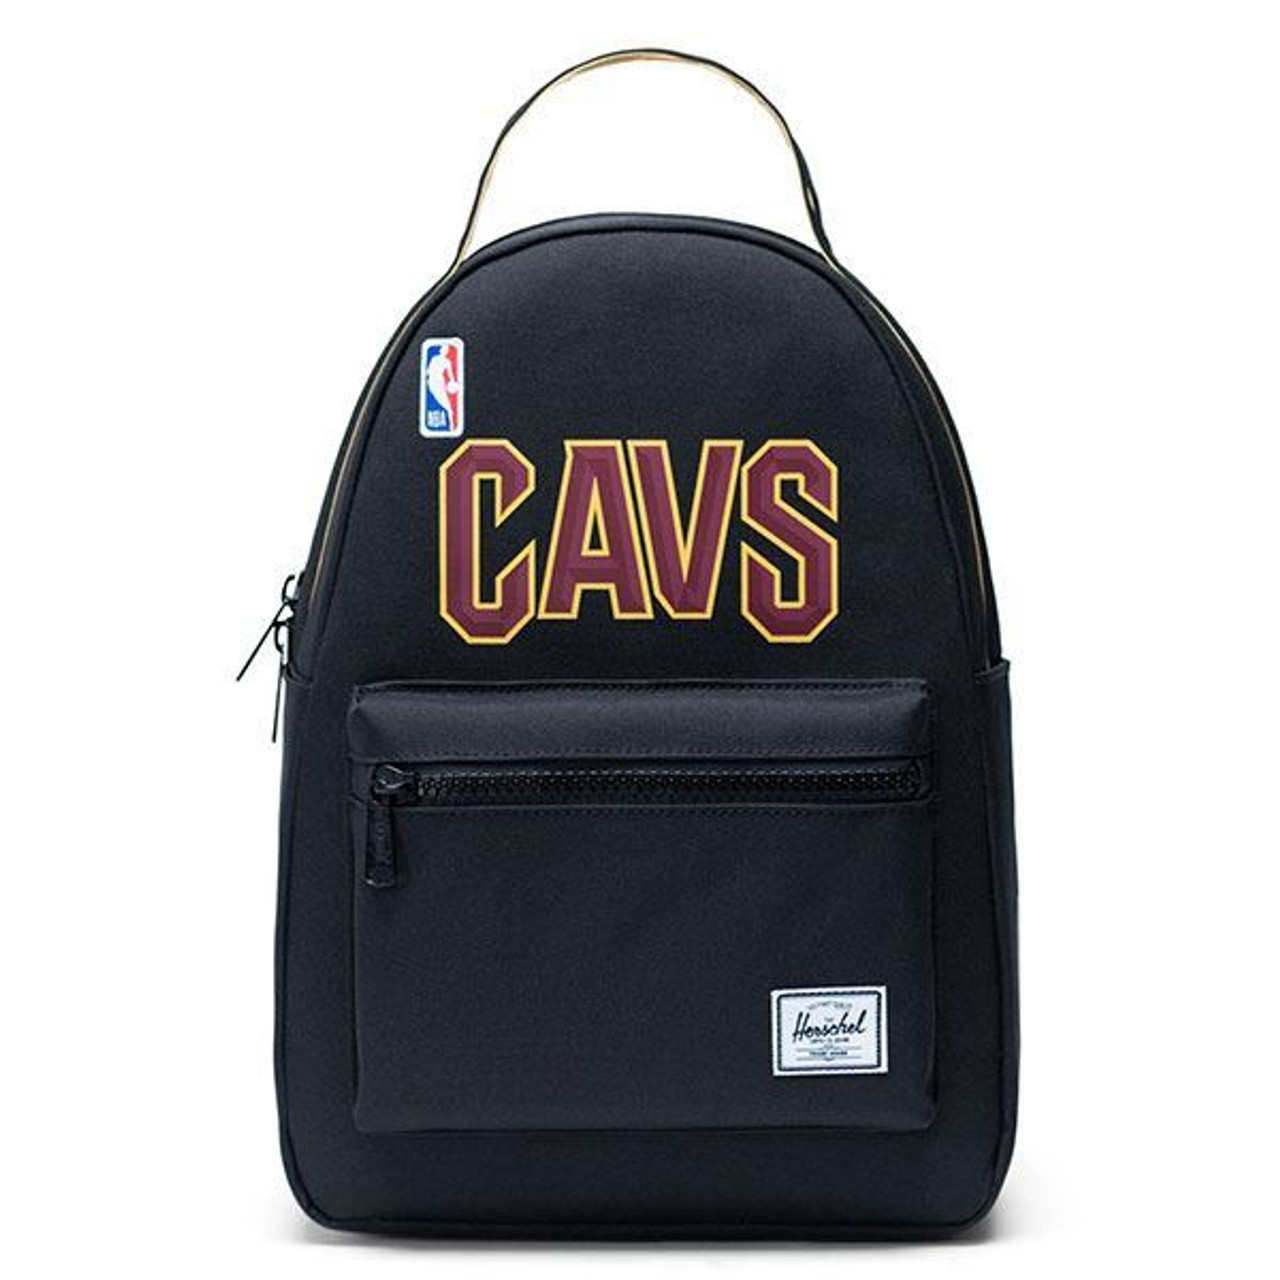 ae202b5fd223 Ladies Cavs Small Backpack - Cleveland Cavaliers